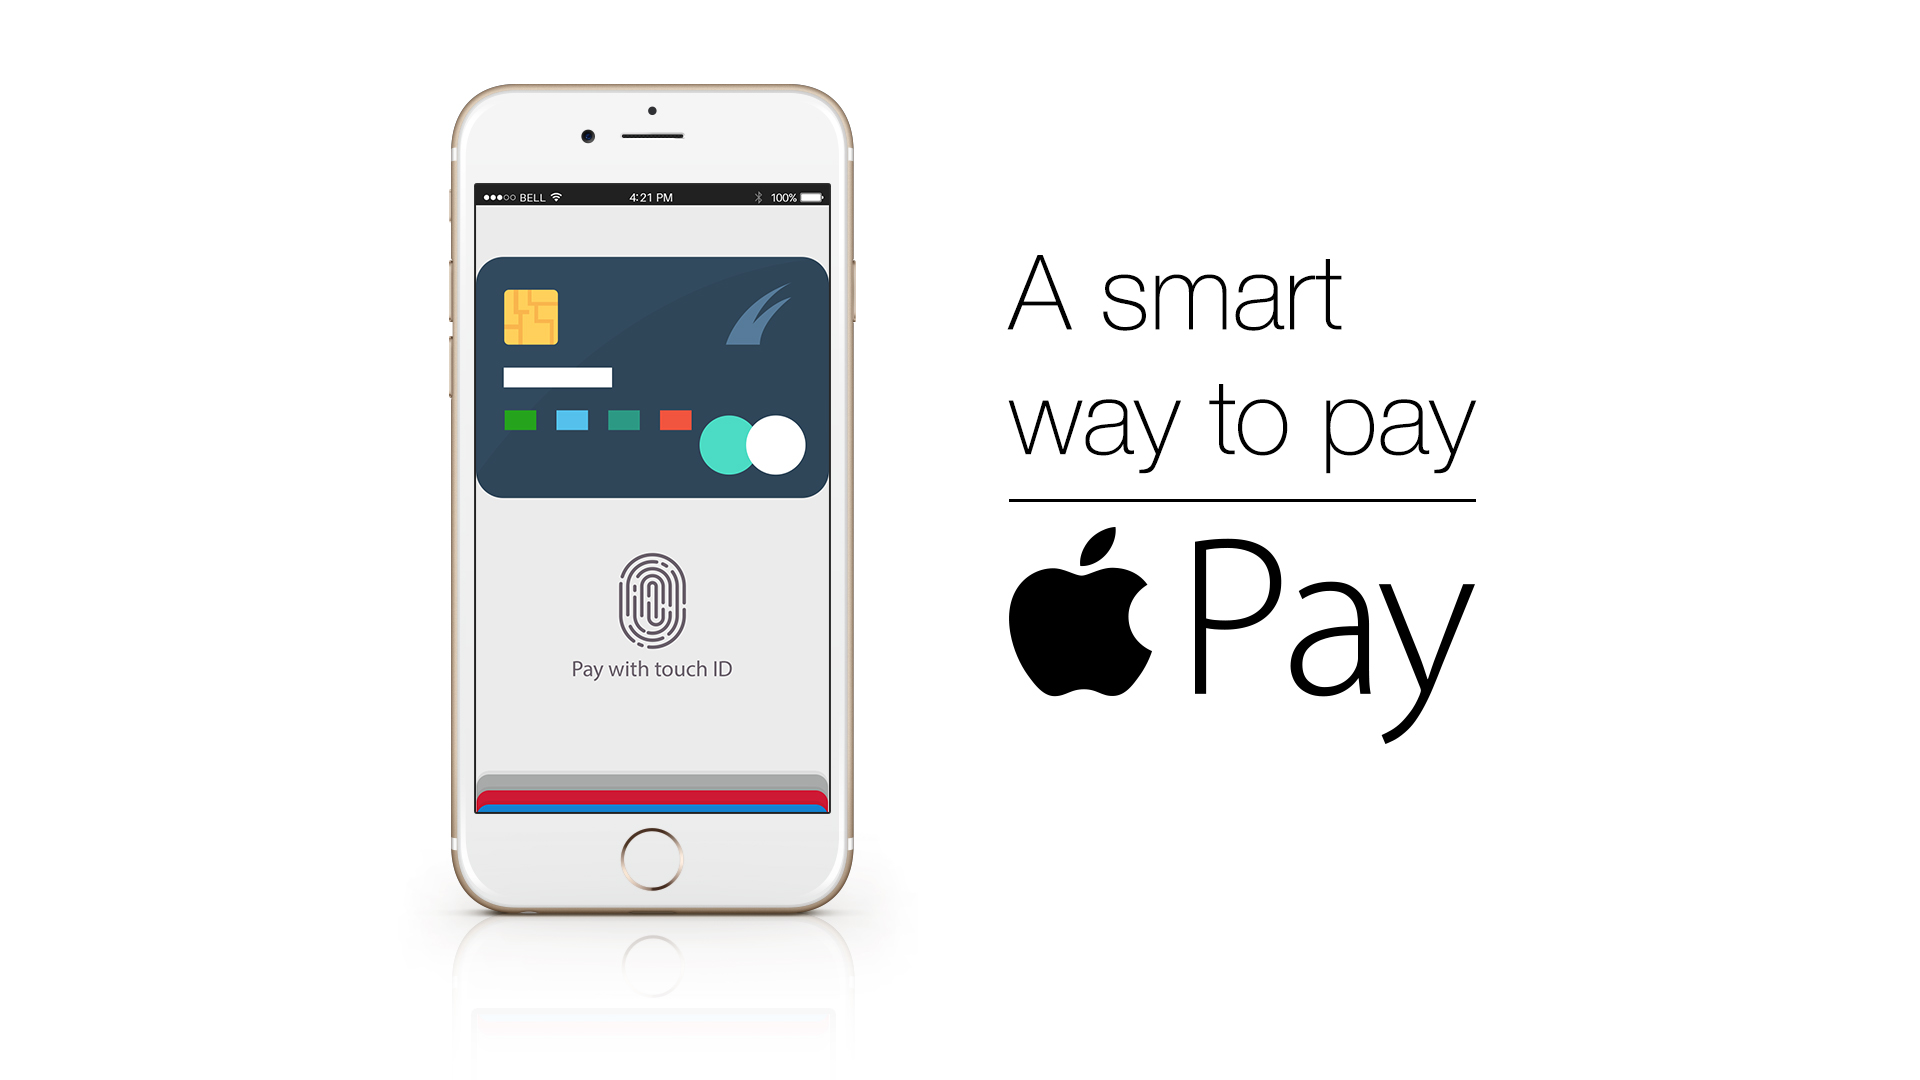 Apple Pay usage trends